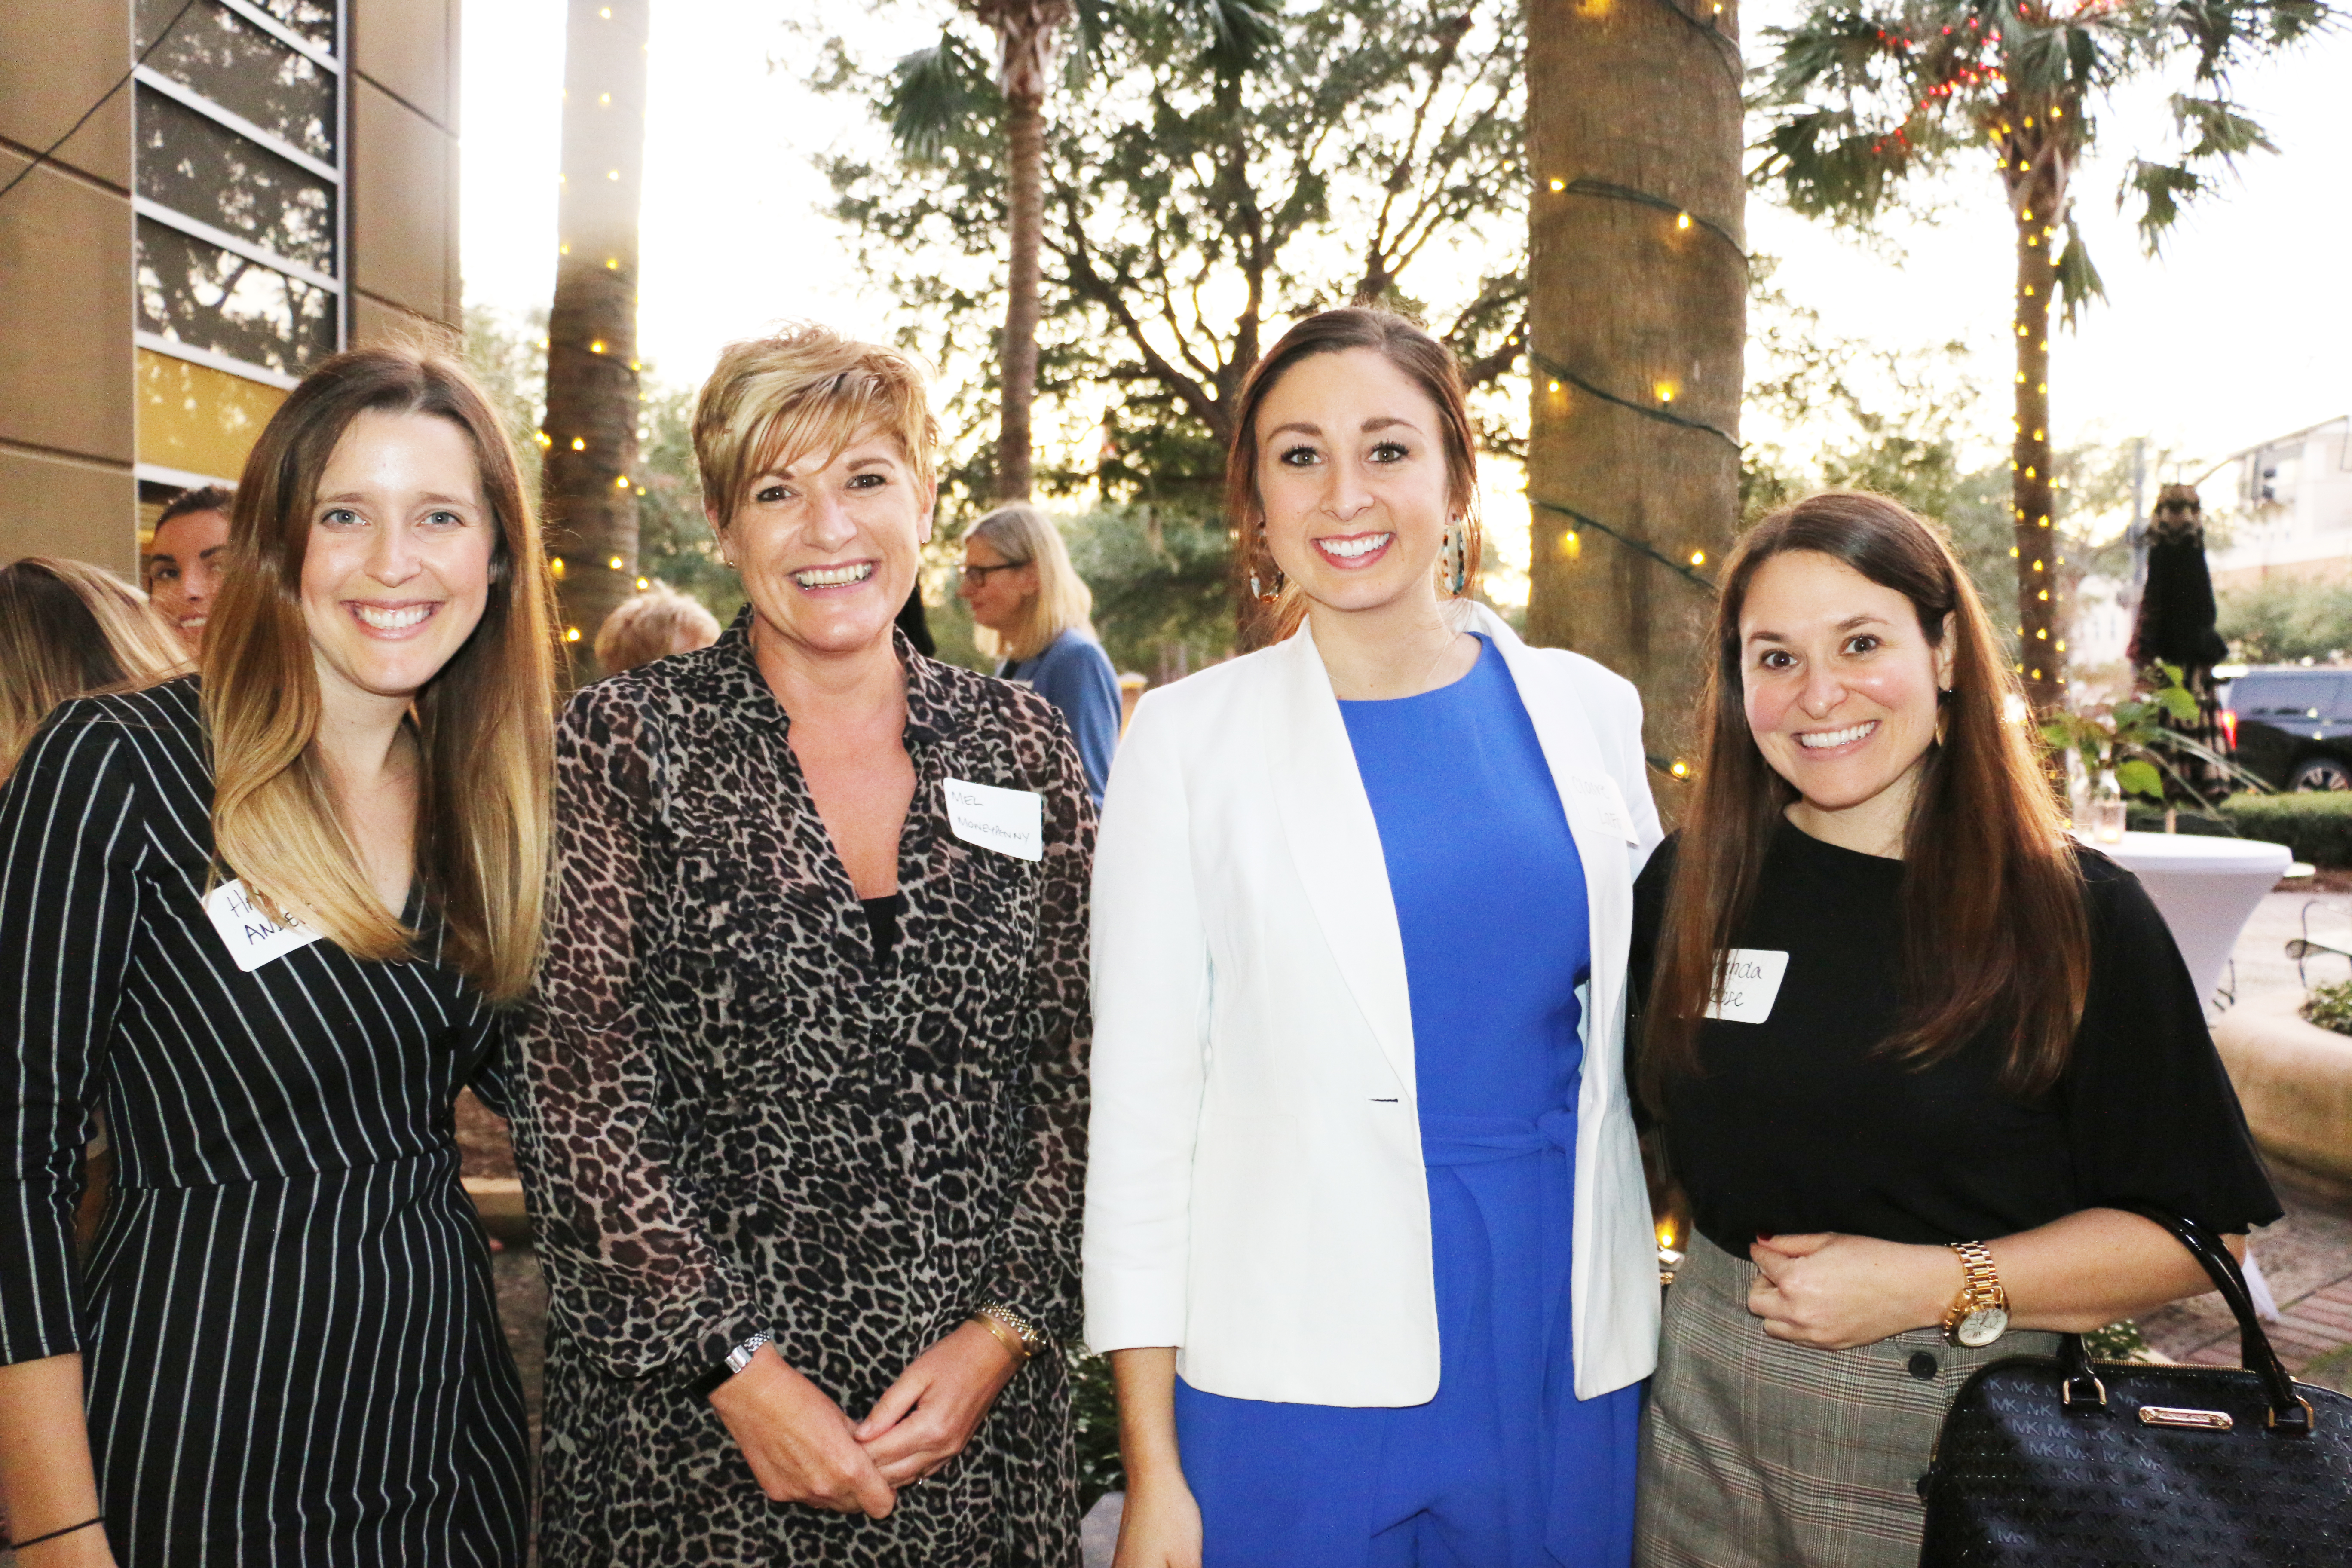 Hayley Anders of Hall Management Group, Mel Carlen of Moneypenny, and Claire LaFave and Amanda Rose of Synovus spend some time together at the first AWE Networking Group meeting held last week on Daniel Island.